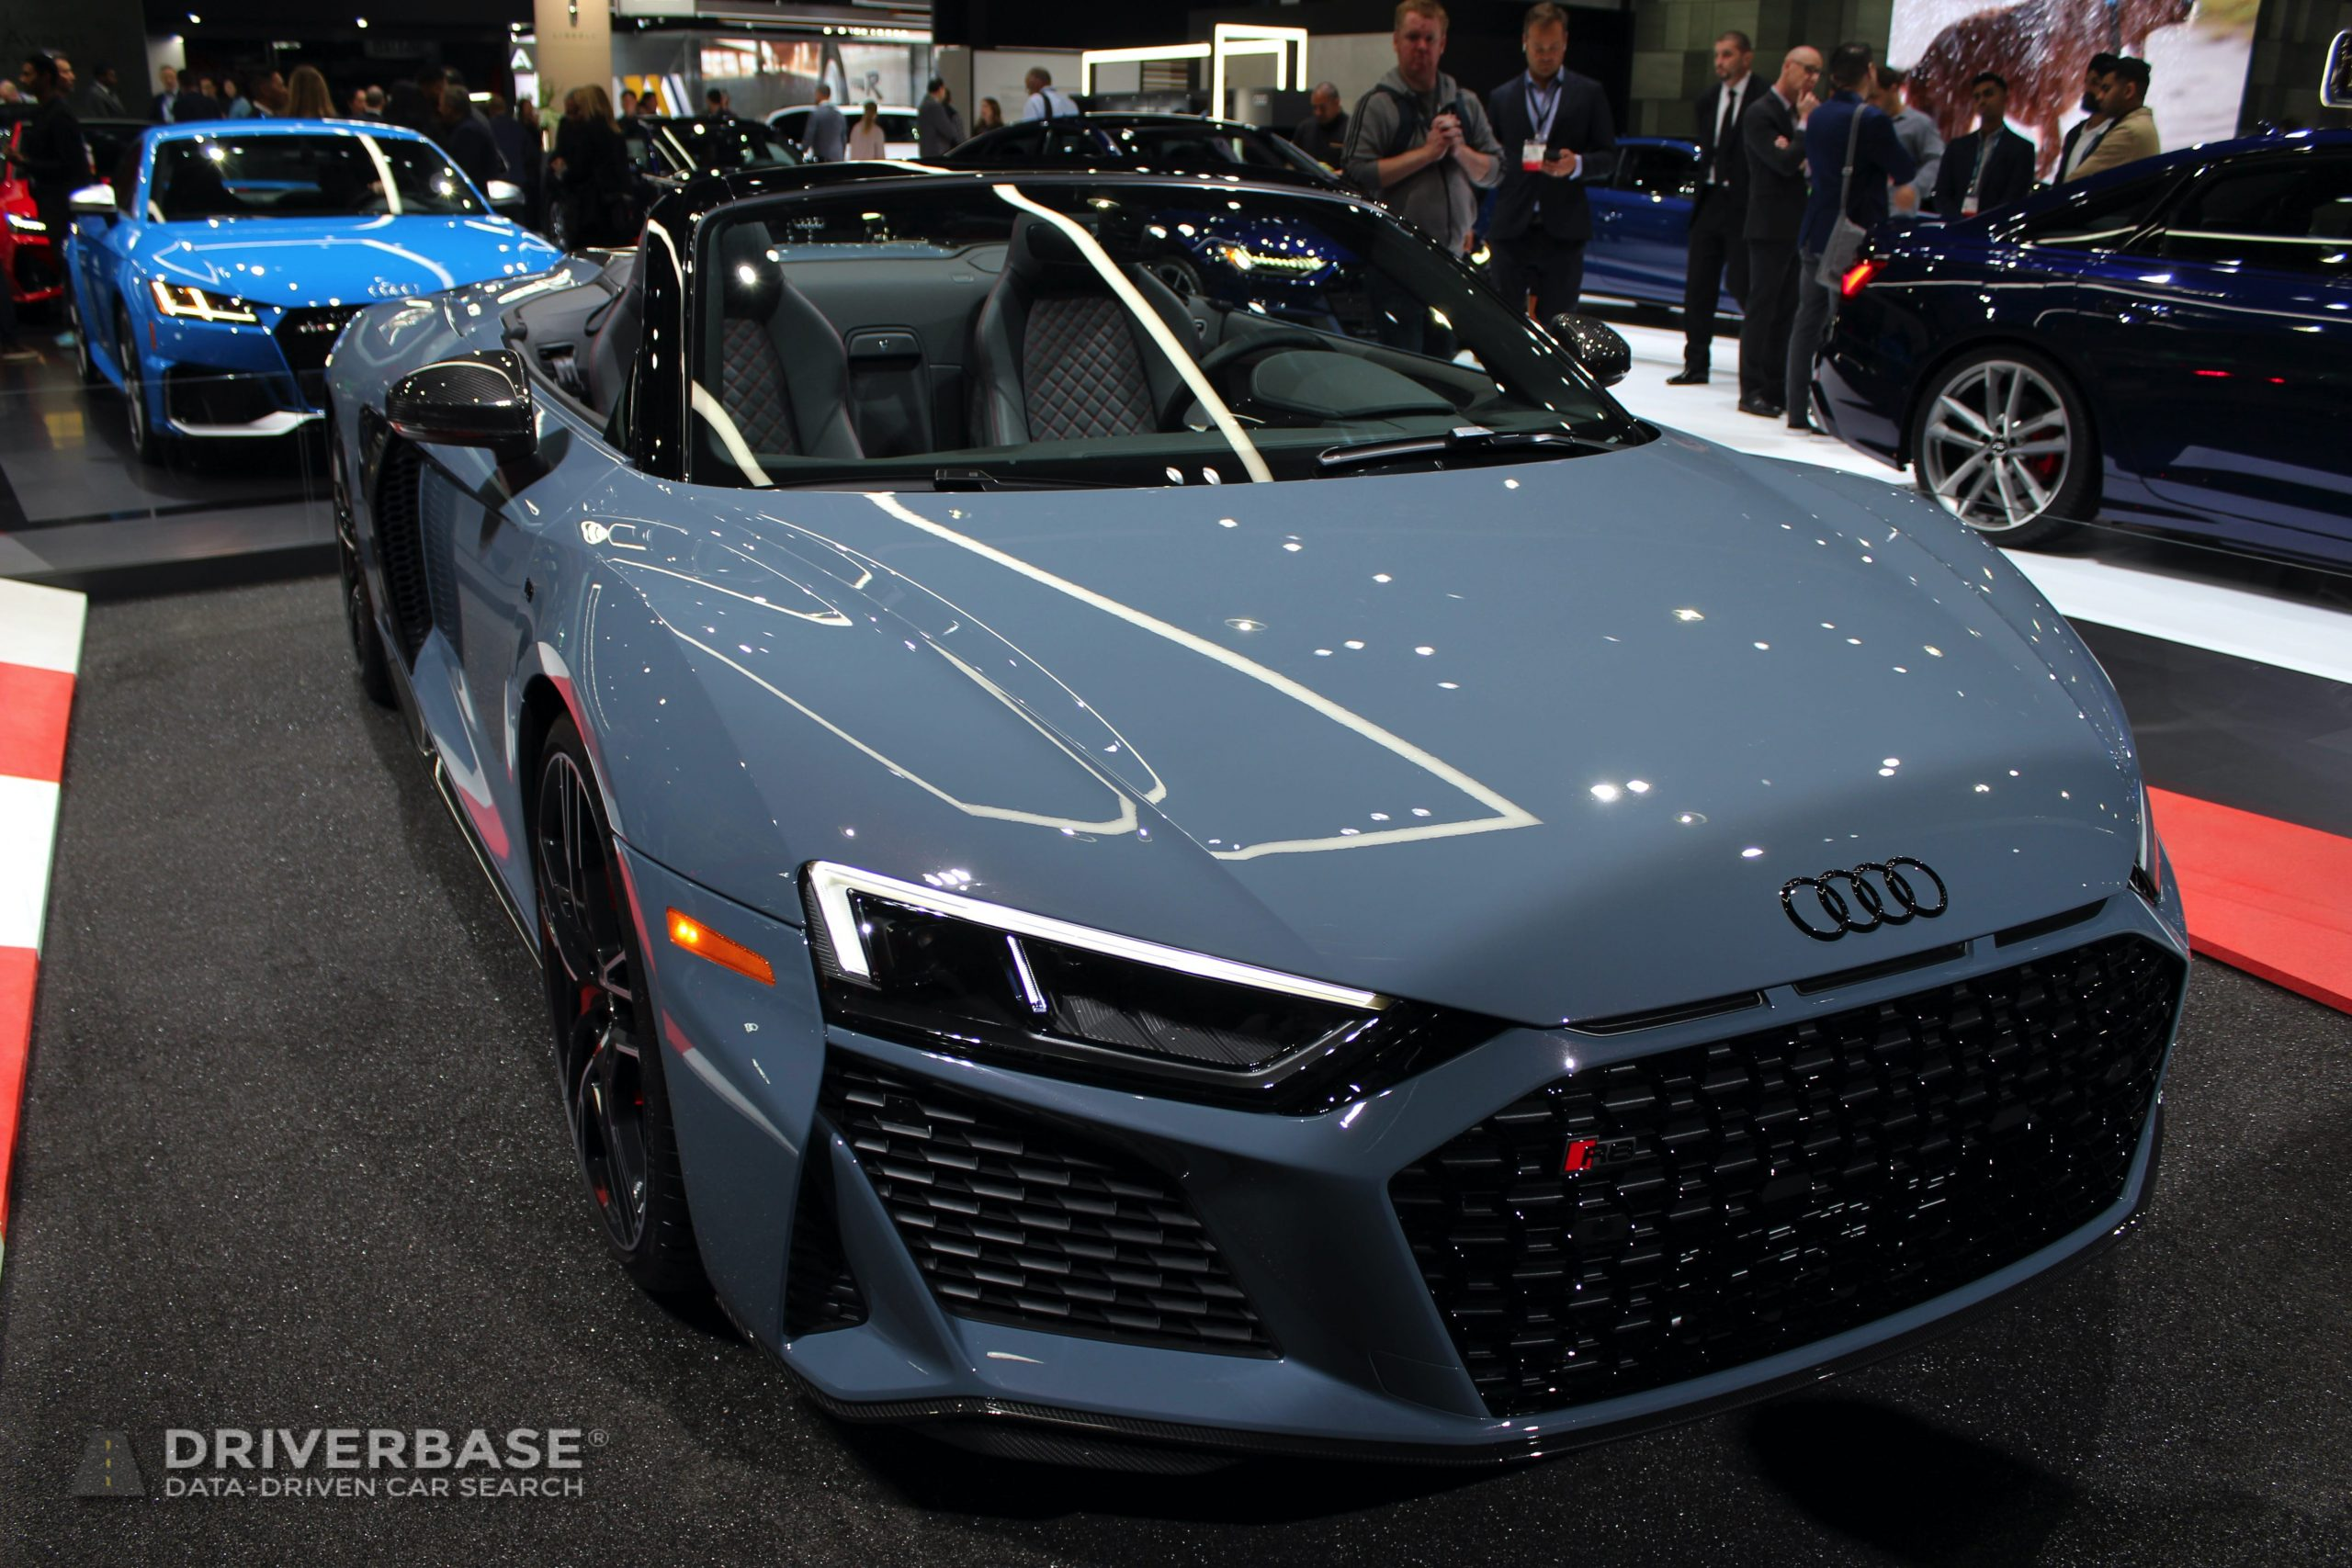 2020 Audi R8 V10 Performance Spyder at the 2019 Los Angeles Auto Show